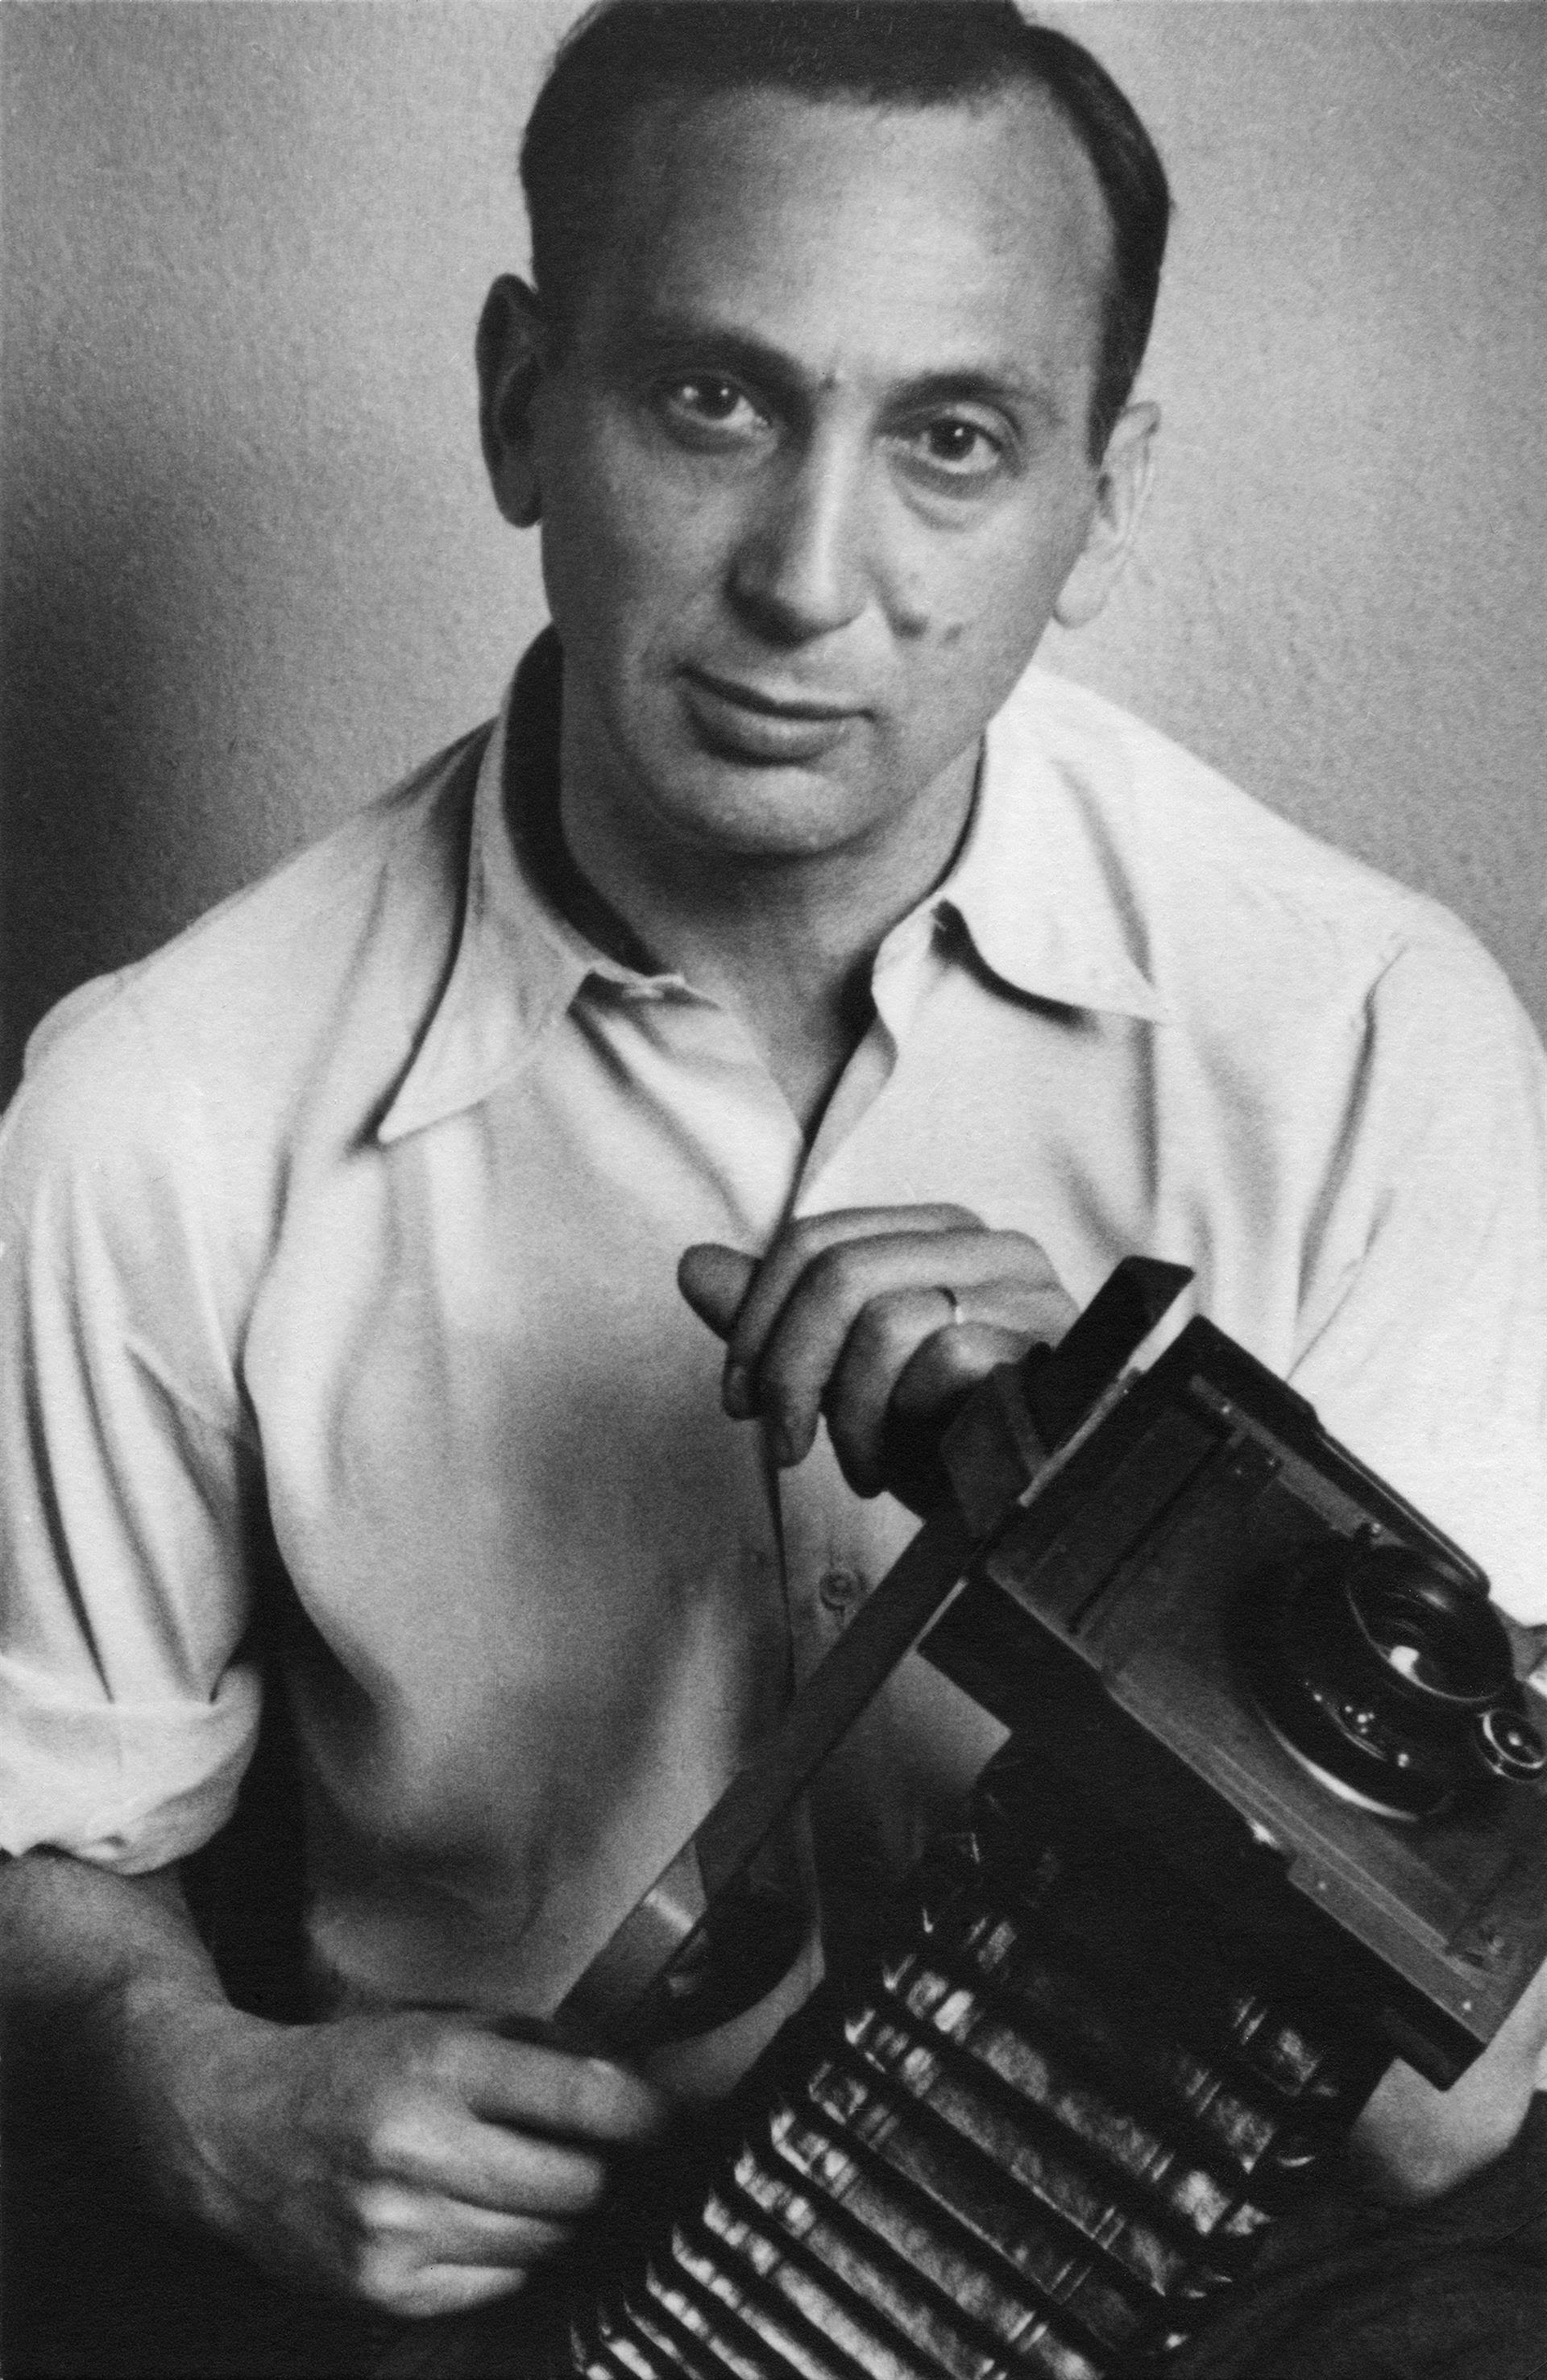 andre_kertesz self portrait with camera 1936